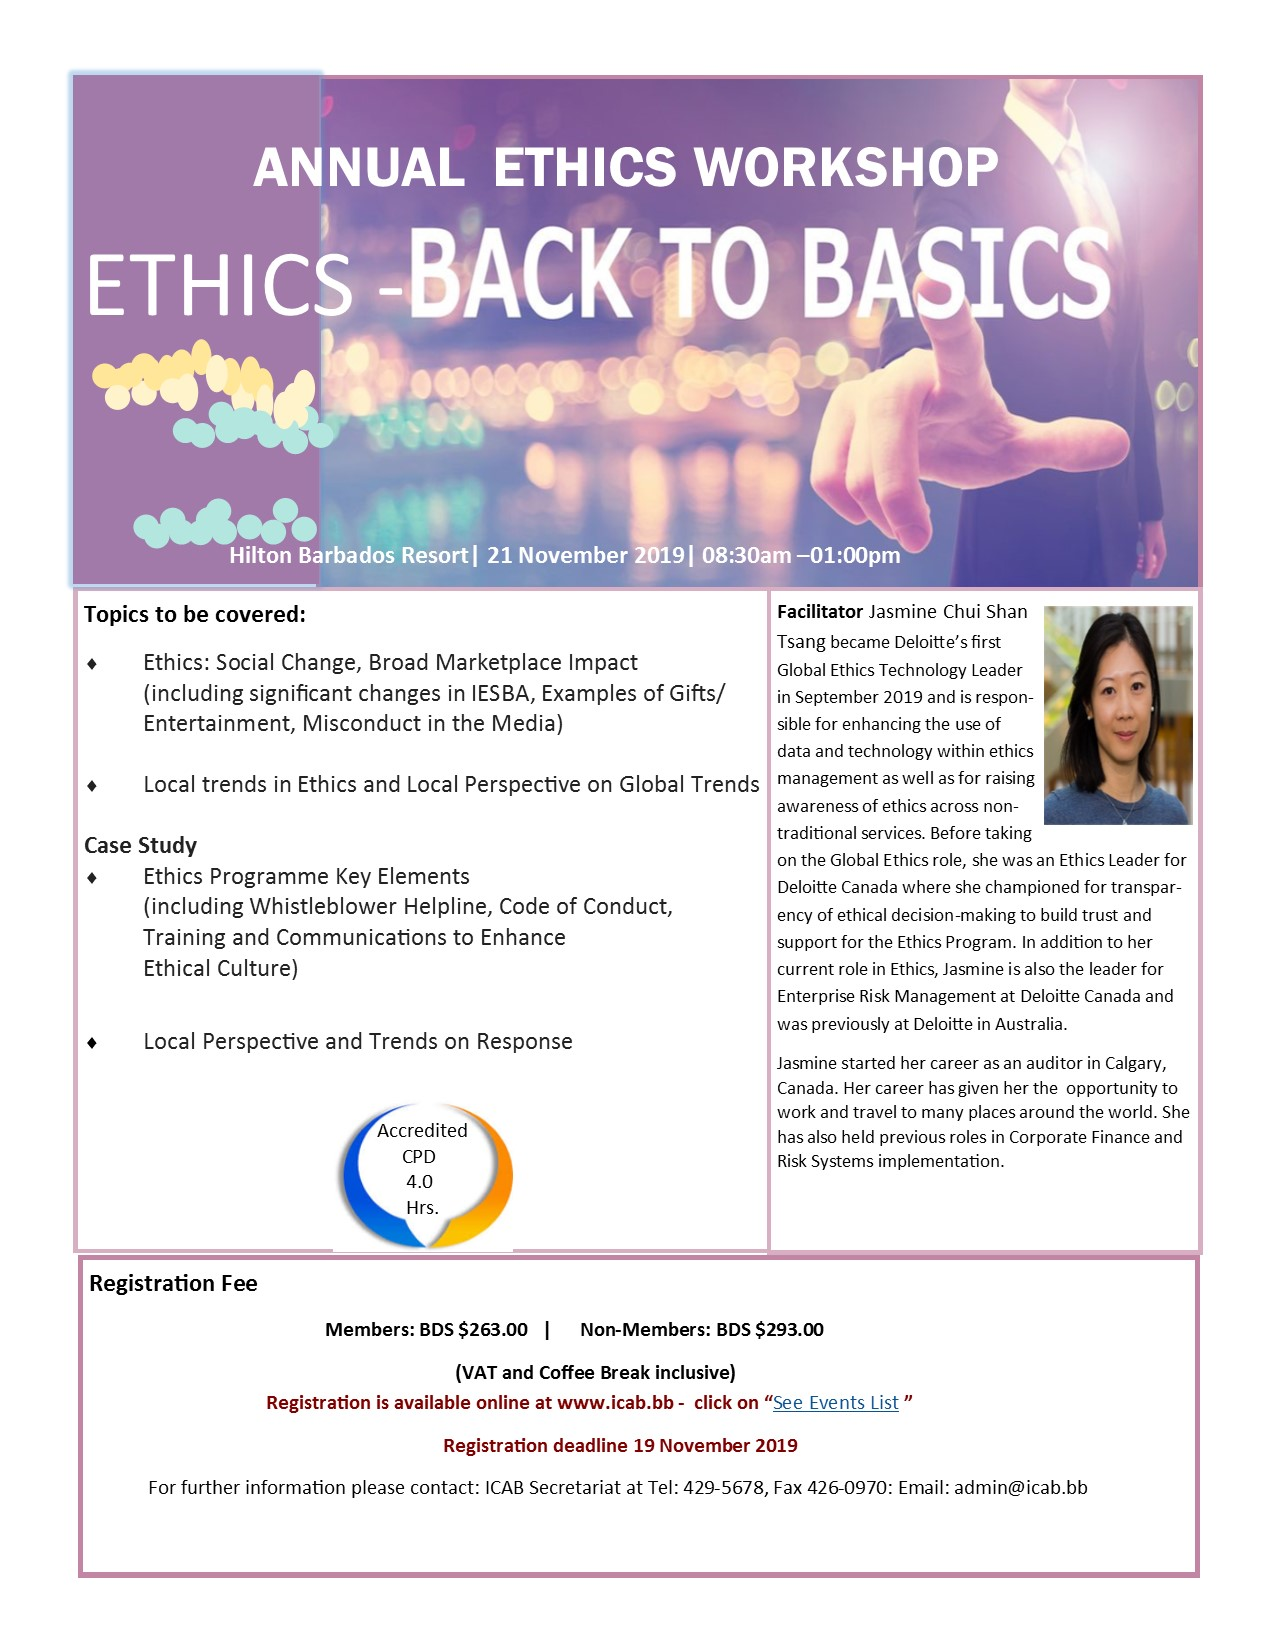 ETHICS - BACK TO BASICS